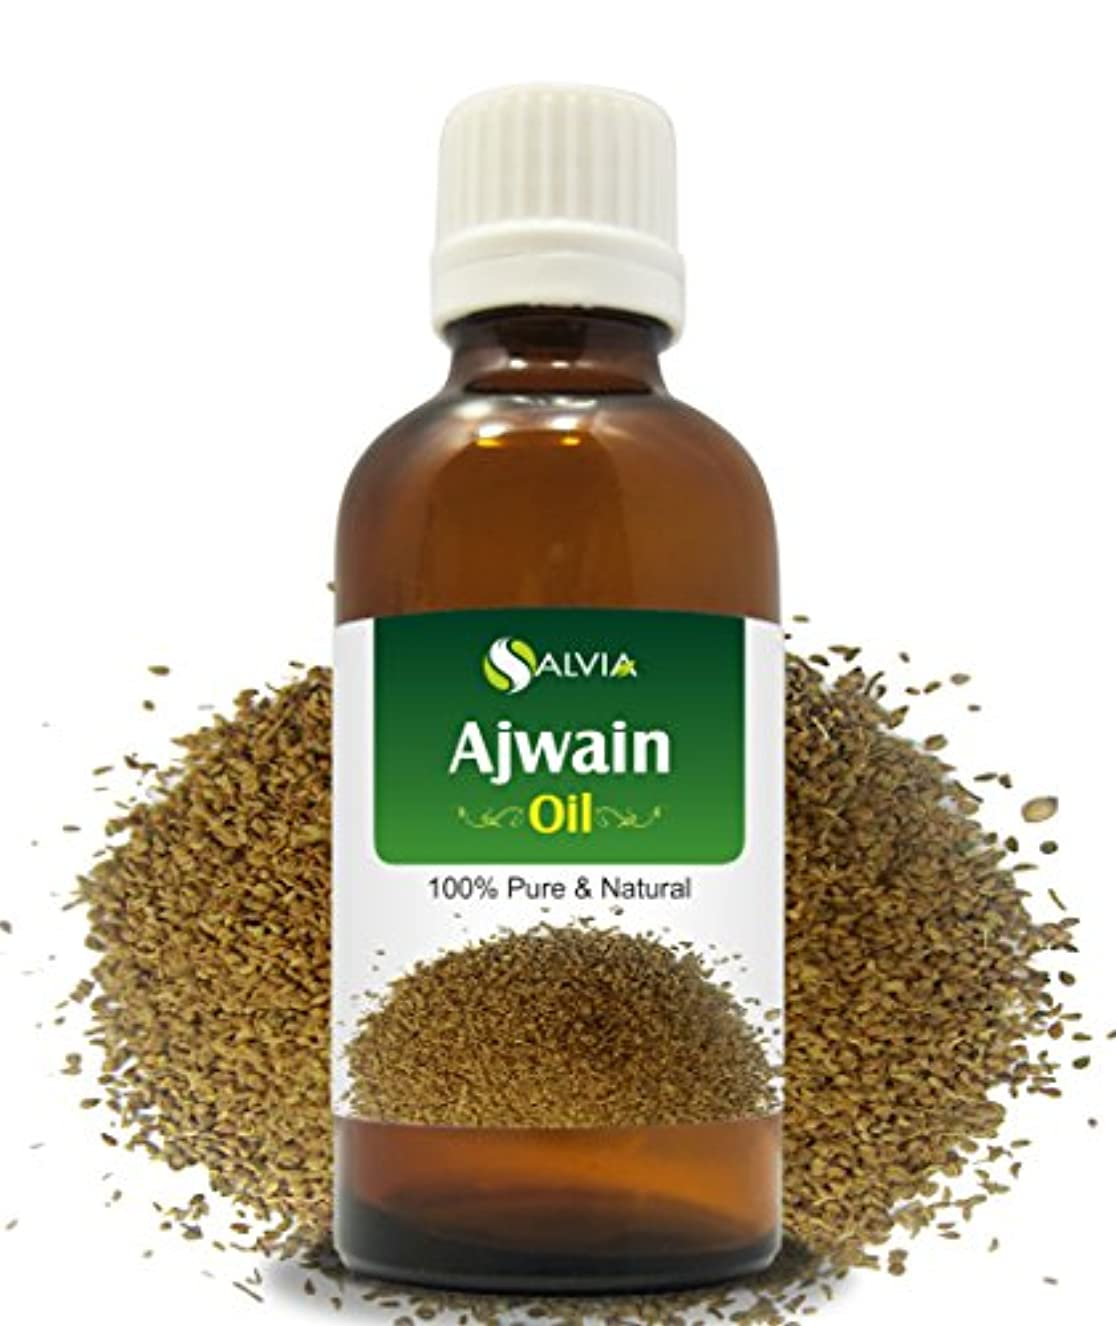 道路クラウドとてもAjwain OIL 100% Natural Pure Undiluted Uncut Essential Oil 15ml